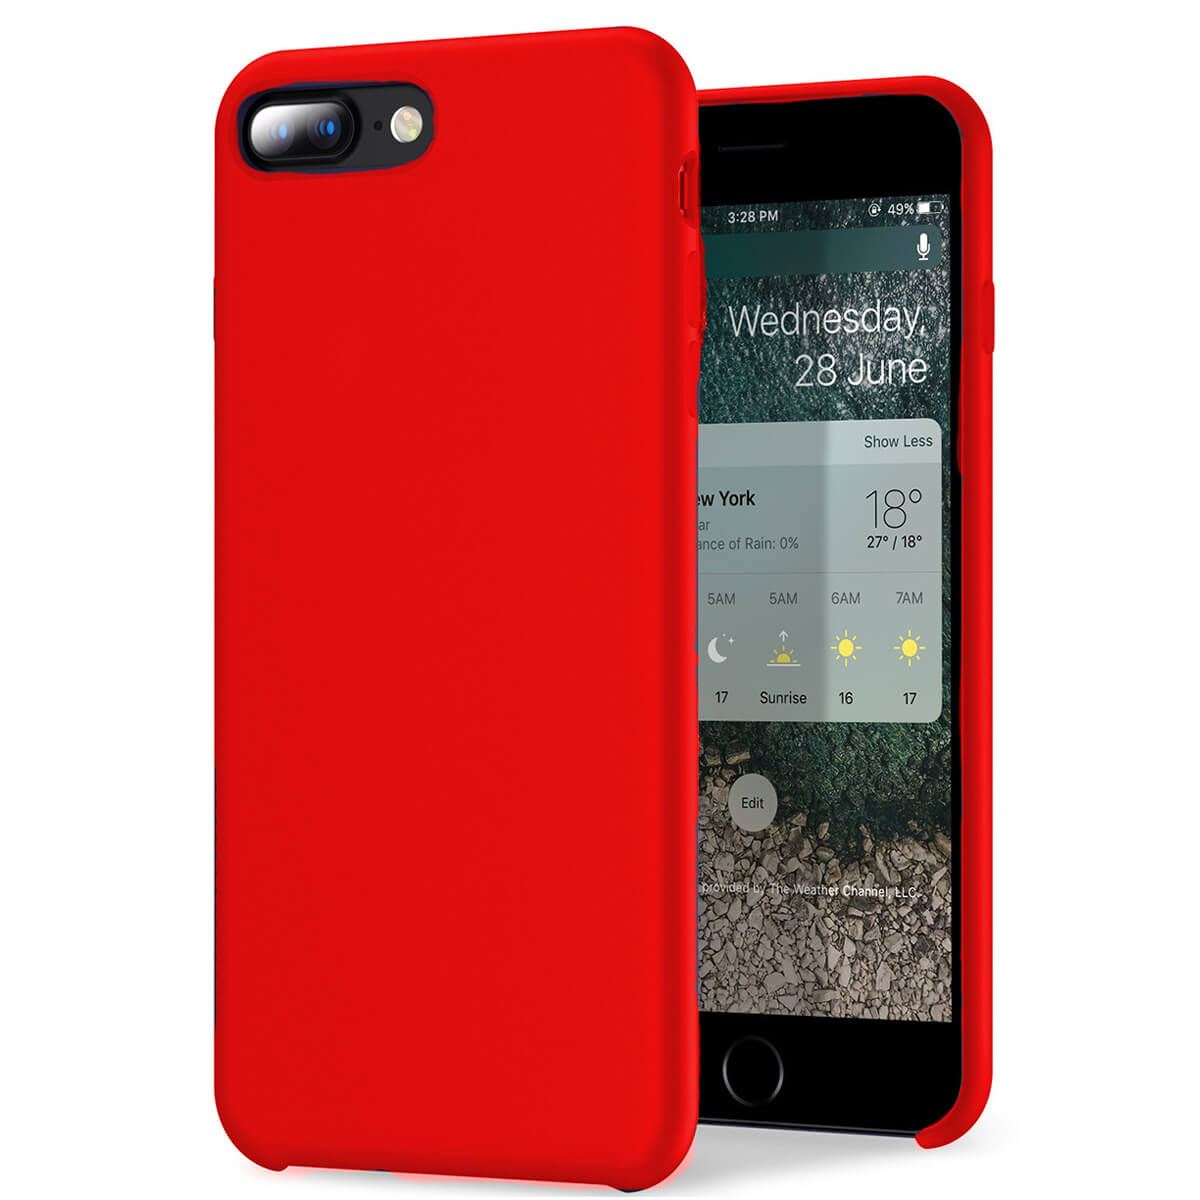 Liquid-Silicone-Phone-Case-For-Apple-iPhone-Soft-Shockproof-Matte-Back-Cover thumbnail 18